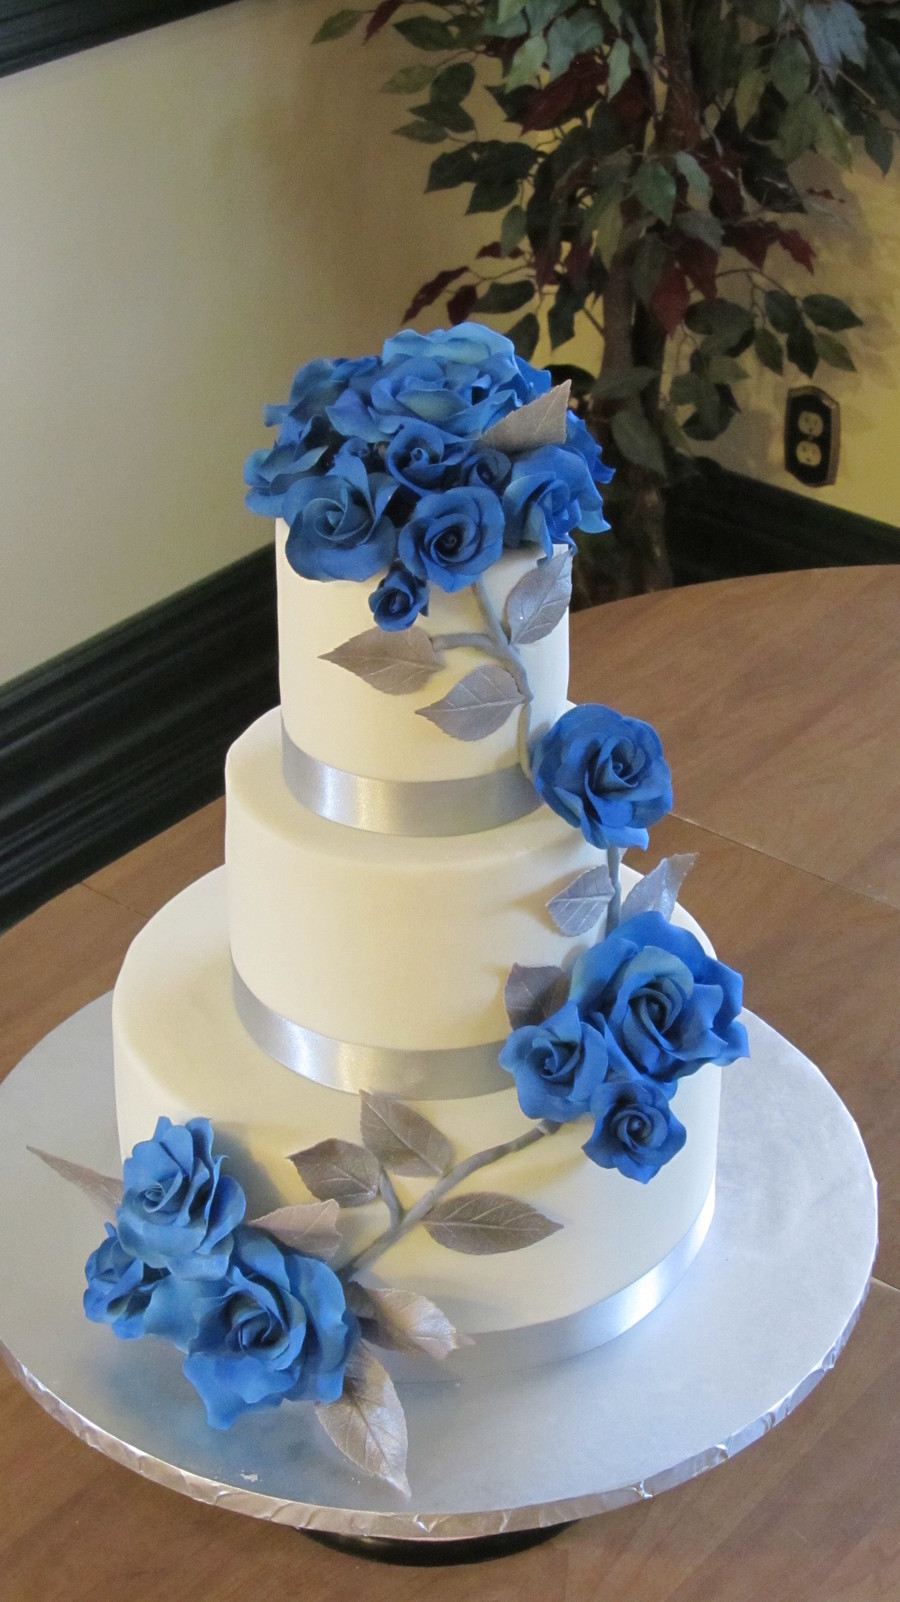 Sapphire Roses And Silver Leaves.  on Cake Central